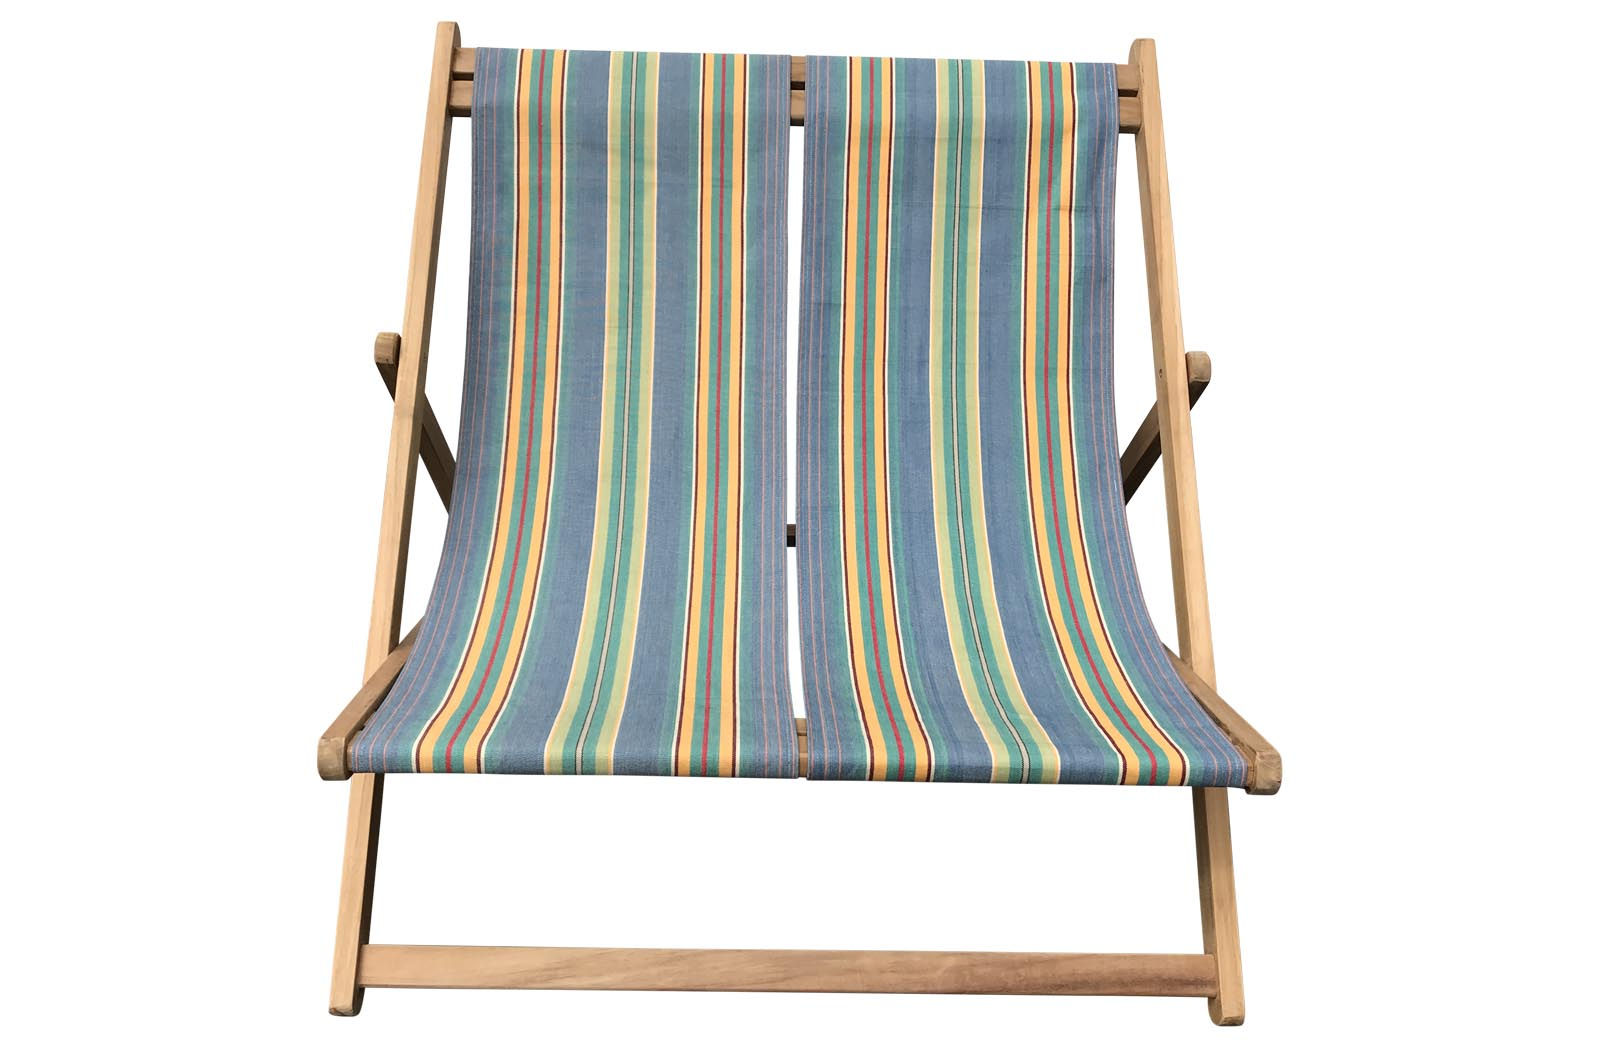 Double Deckchairs Sky blue, jade green